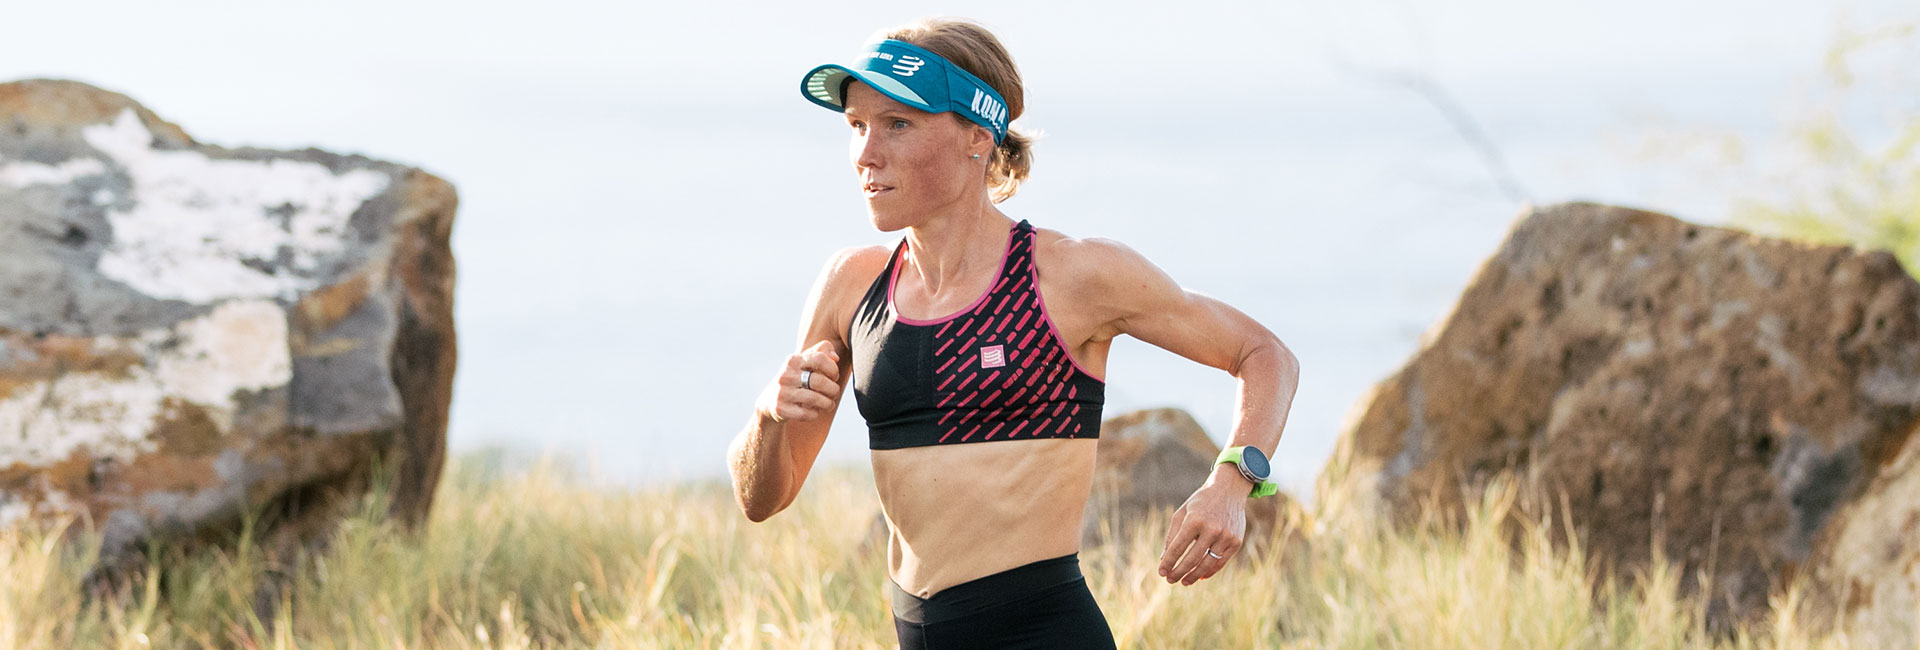 Recovery From Training – Pro Tips From Triathlete Kaisa Sali